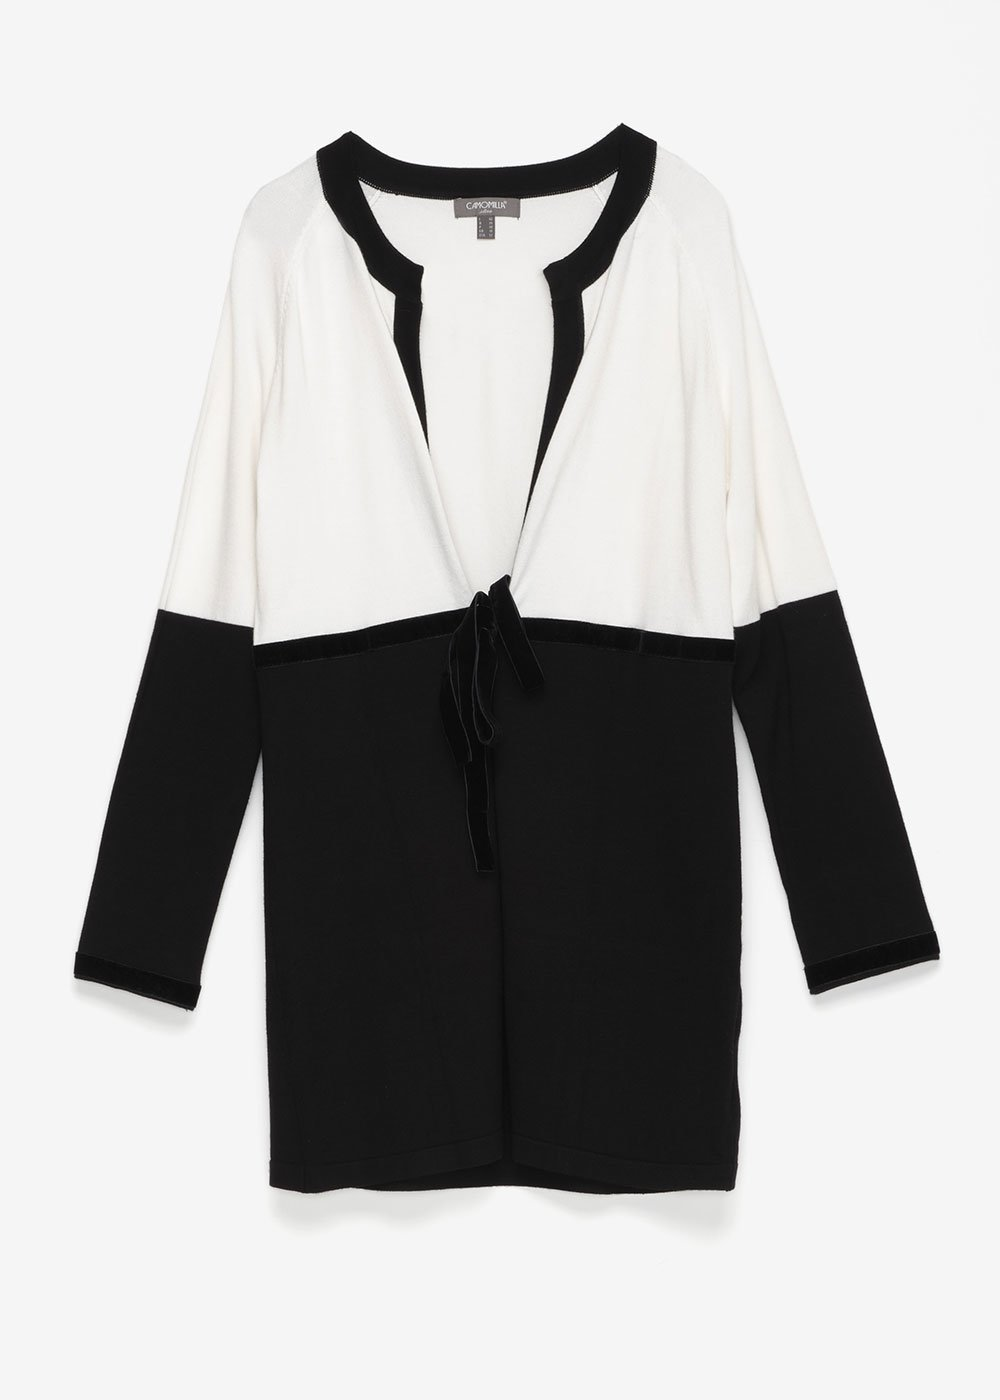 Cardigan bi color Carl - Black / White - Donna